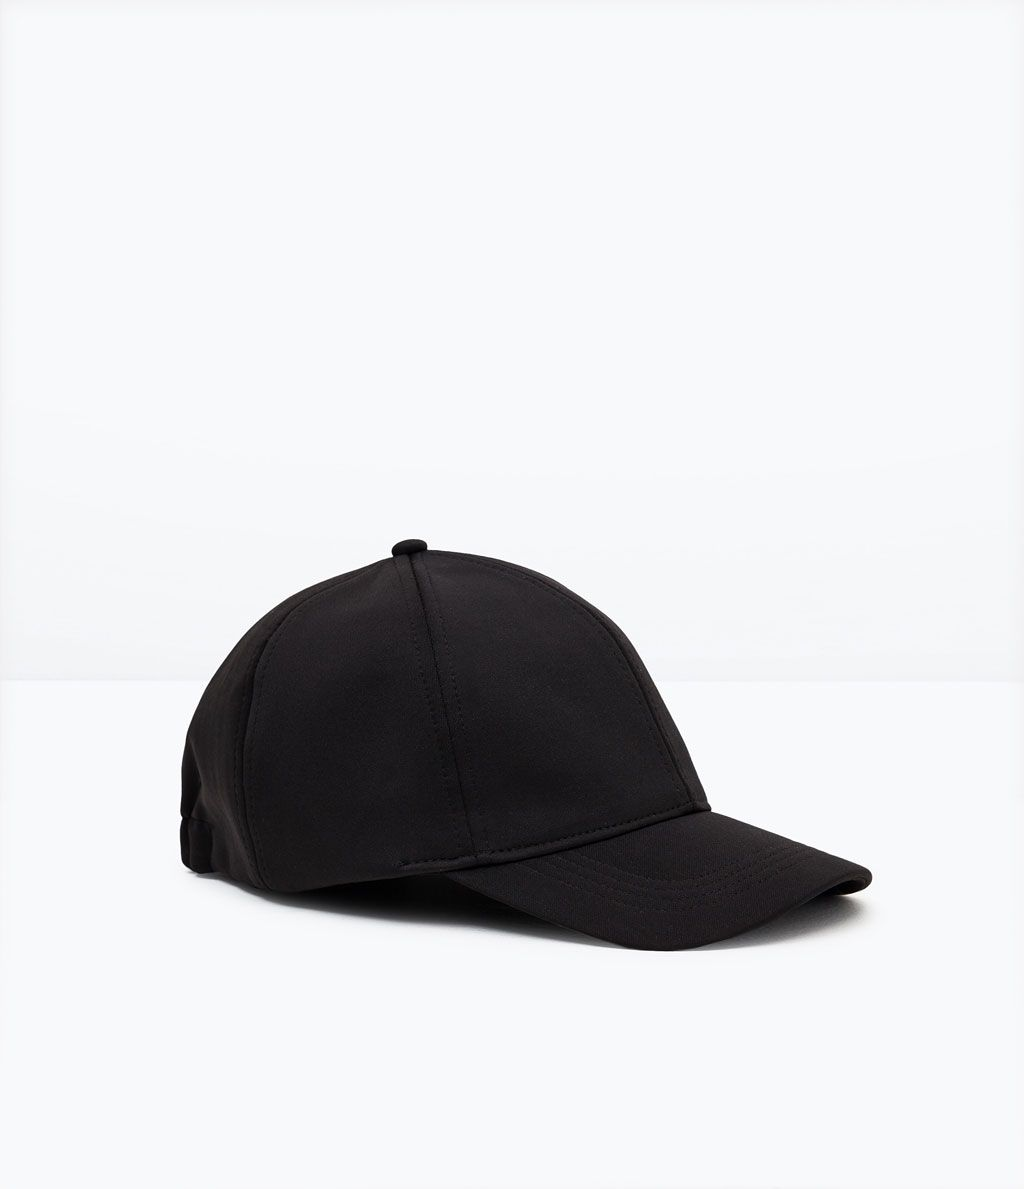 54404d4b8d CAP WITH VISOR-View all-Accessories-MAN   ZARA United States   back ...